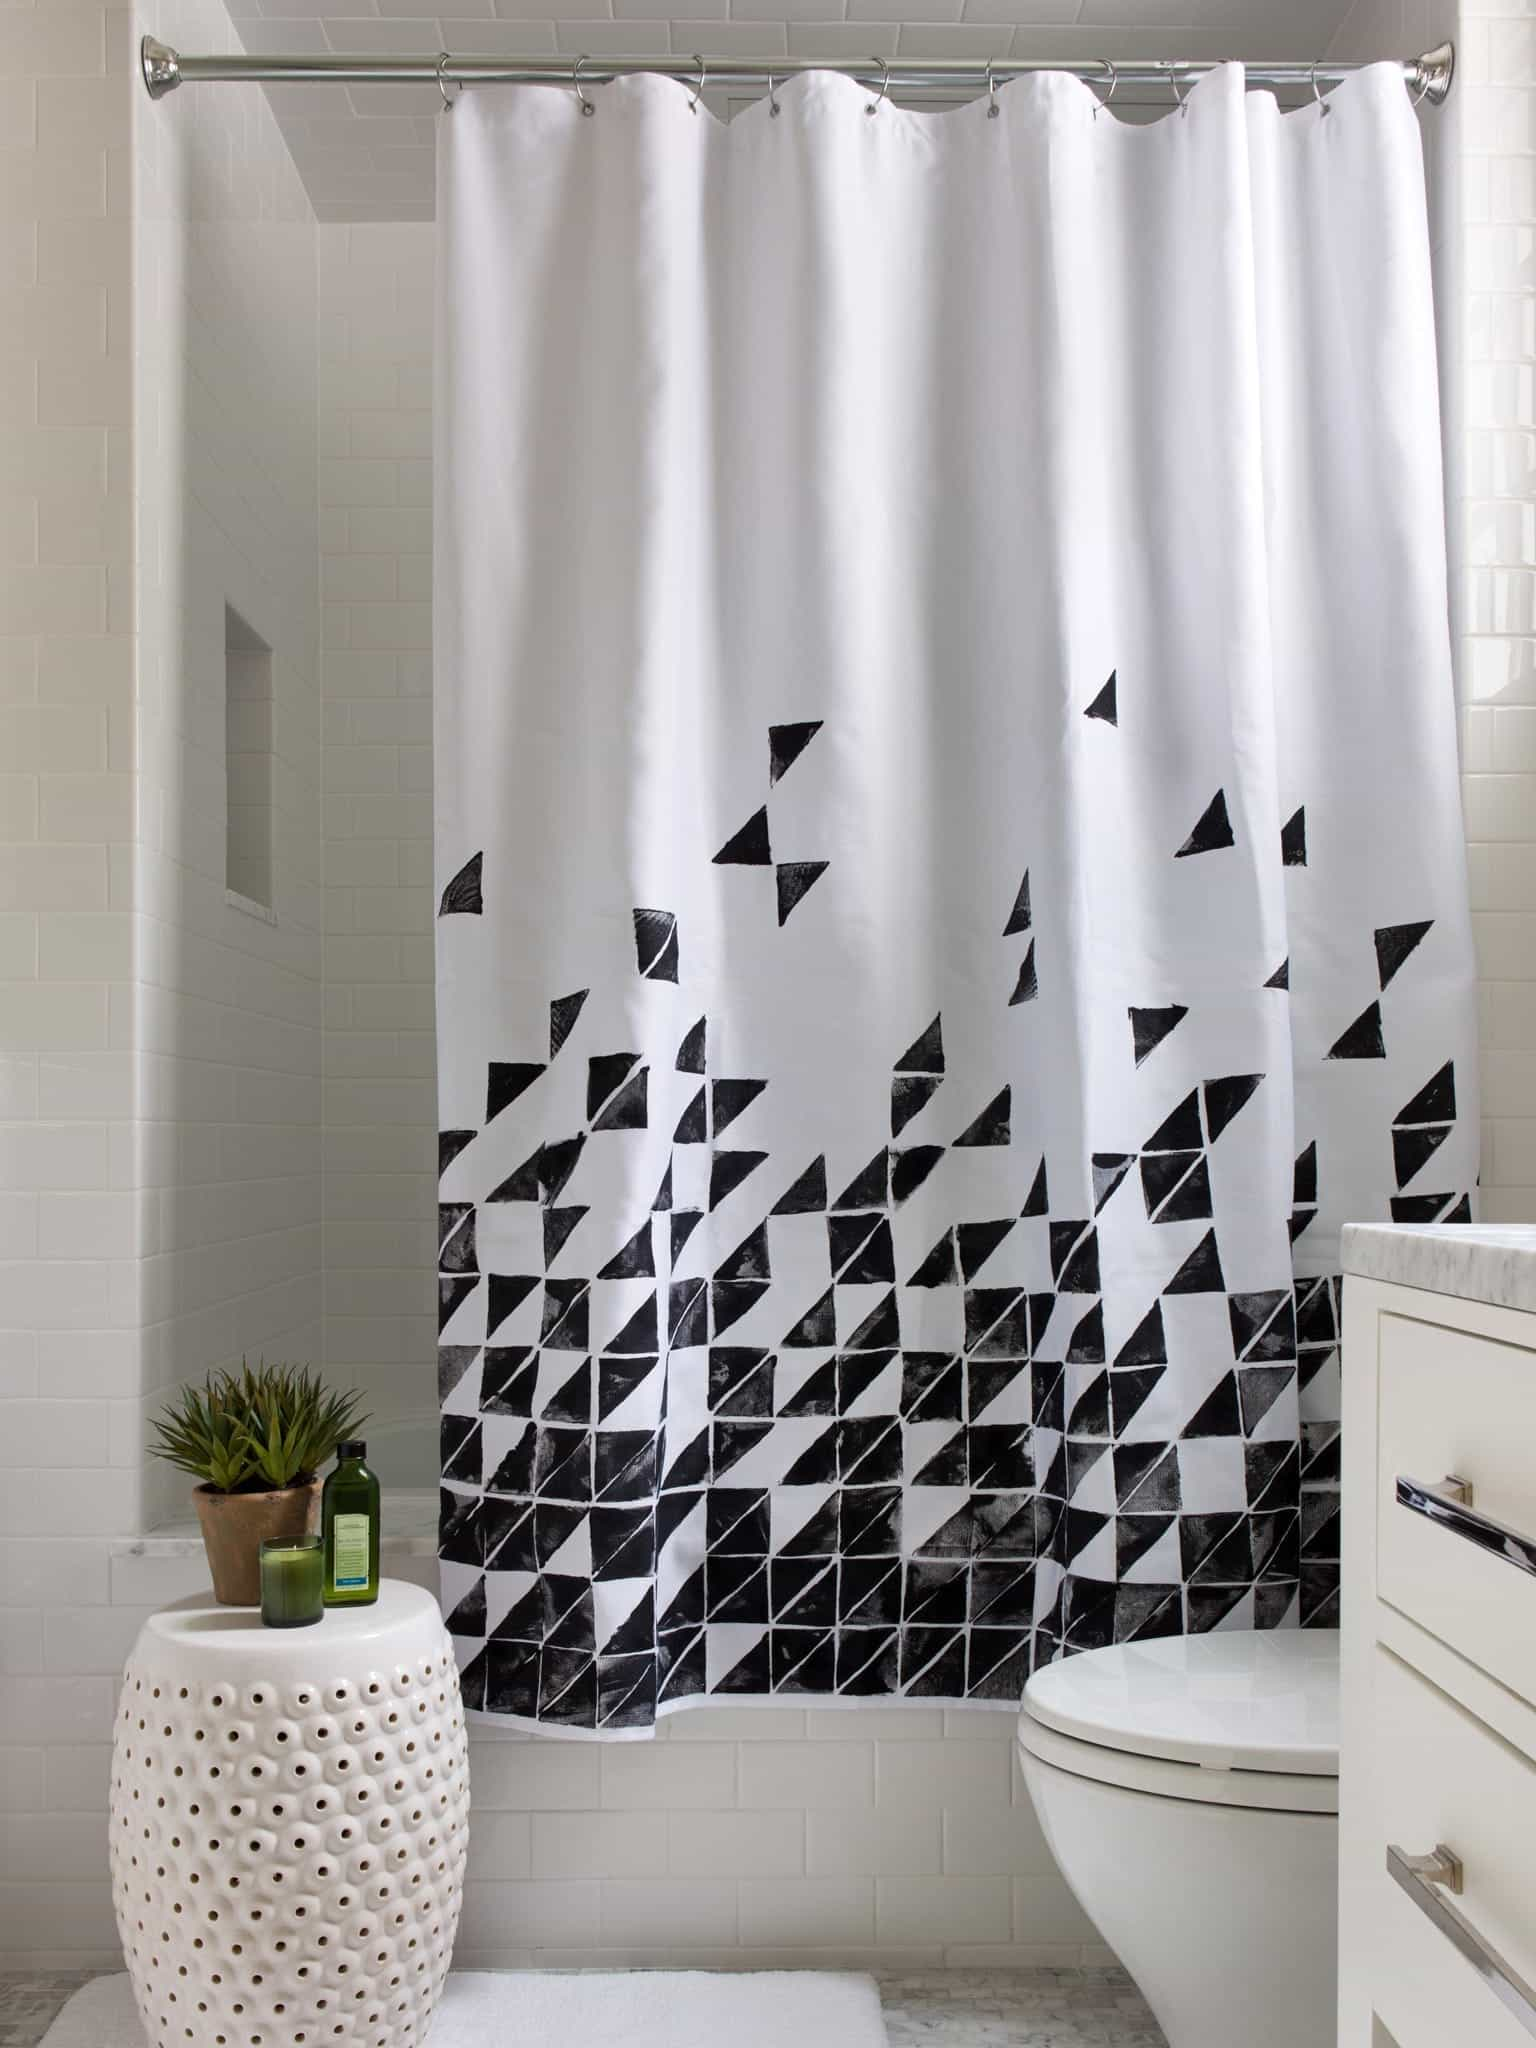 Black And White Geometric Shower Curtain (View 13 of 14)